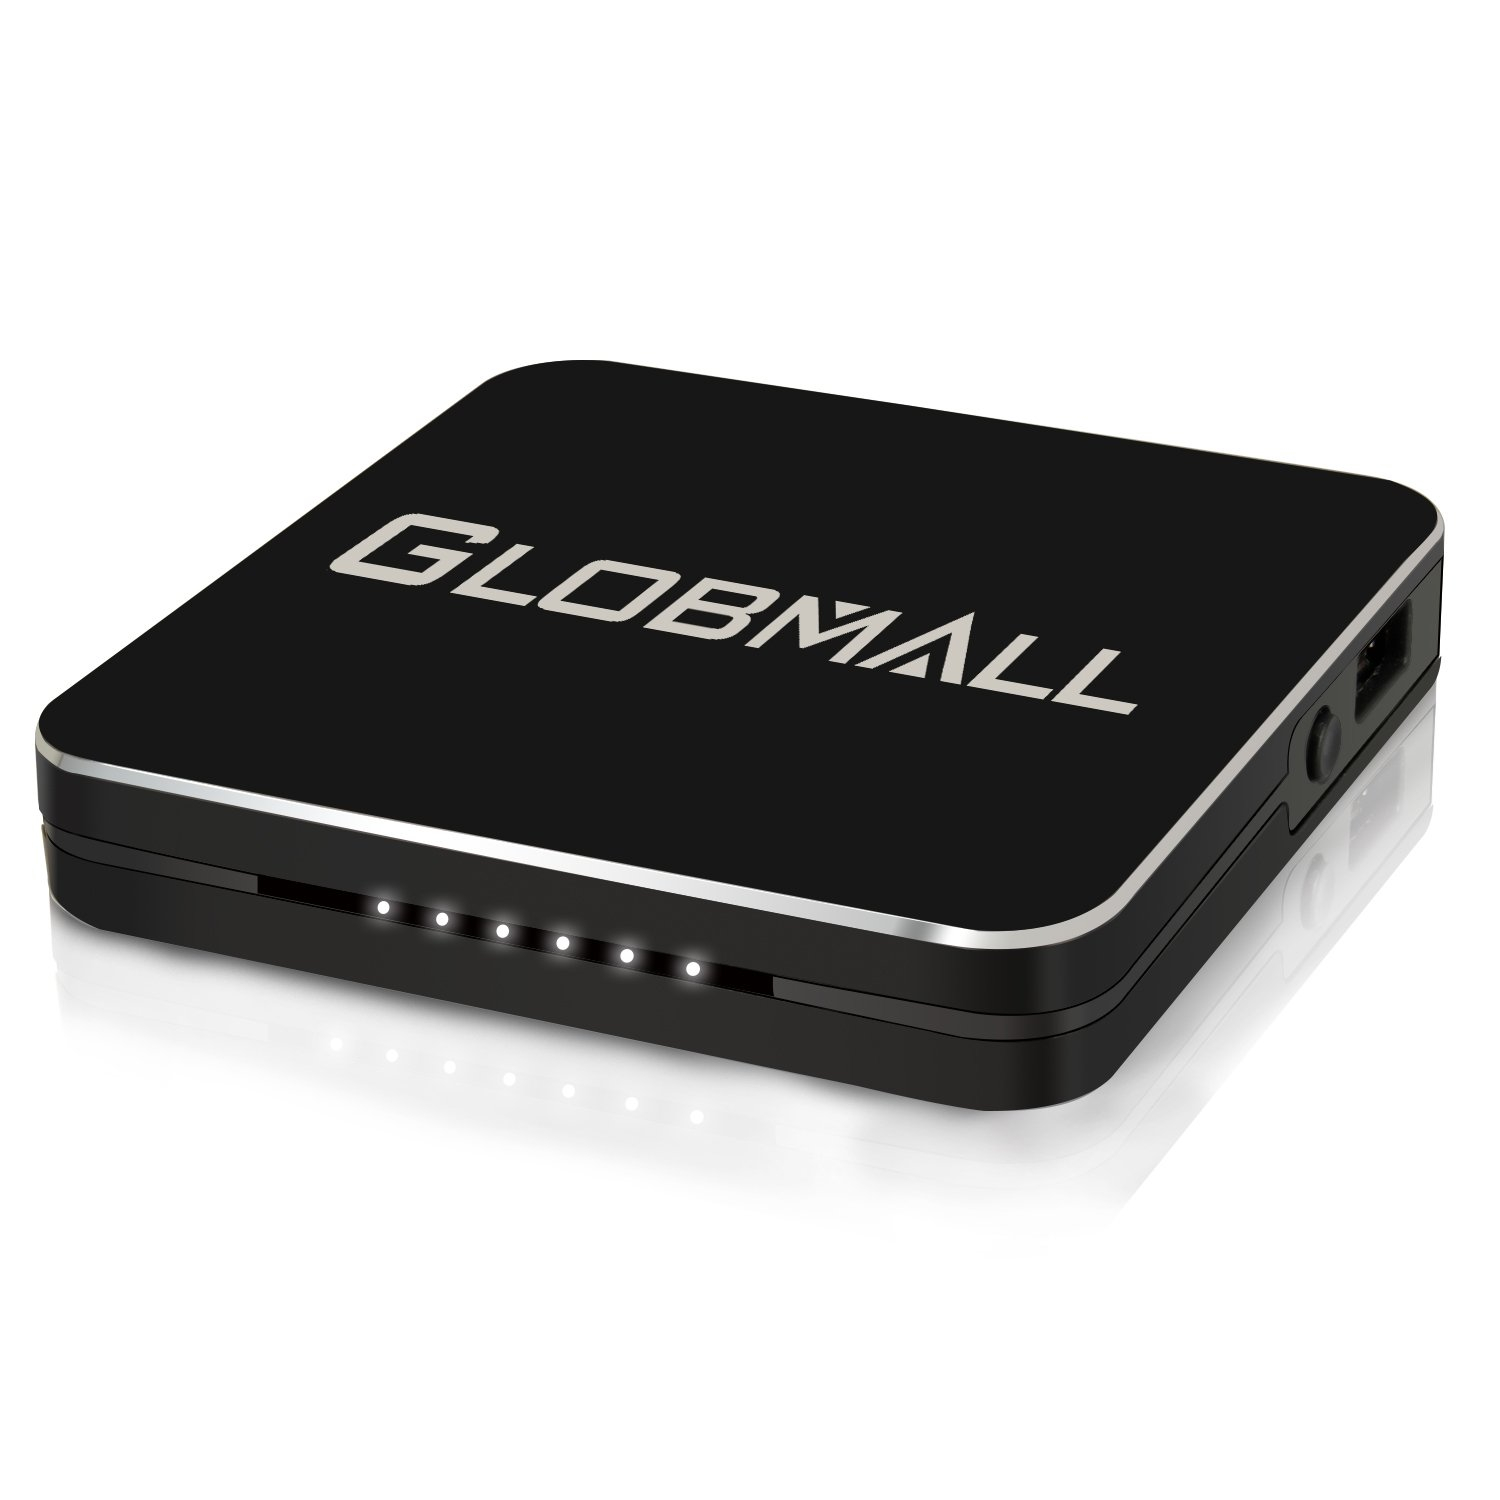 Globmall Game Capture HD, HDMI Video Capture 1080P, for PlayStation 4, Xbox One and Xbox 360, Game Recorder Device , Support Microphone Input